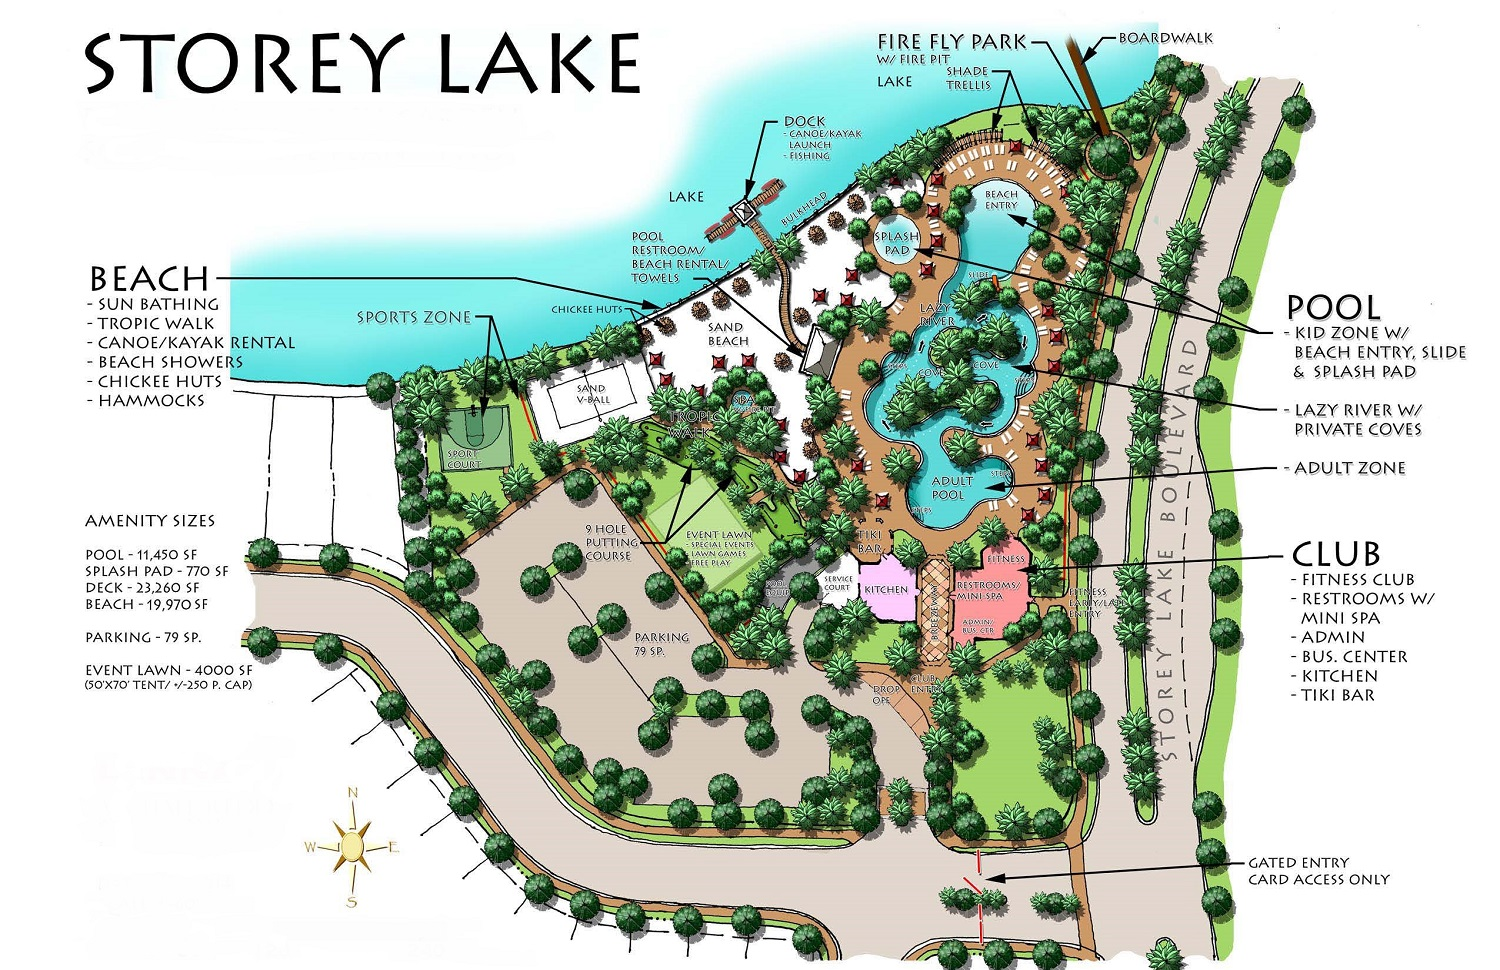 Storey Lake Vacation Home Sales Story Lake Resort Florida